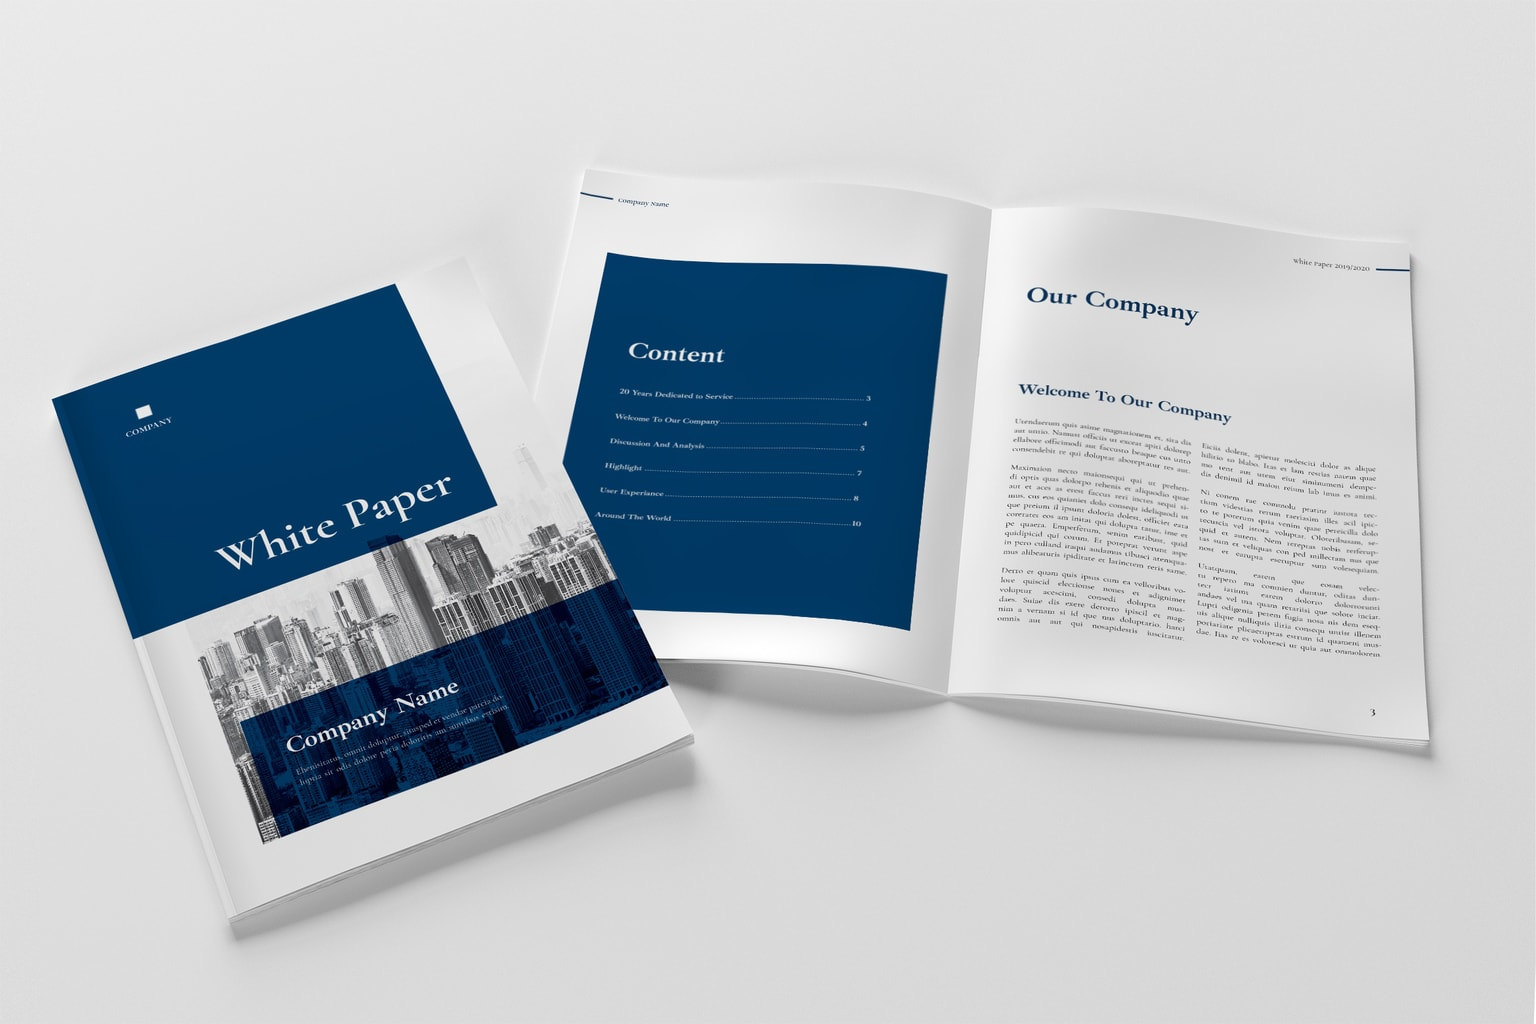 White Paper - Corporate Report